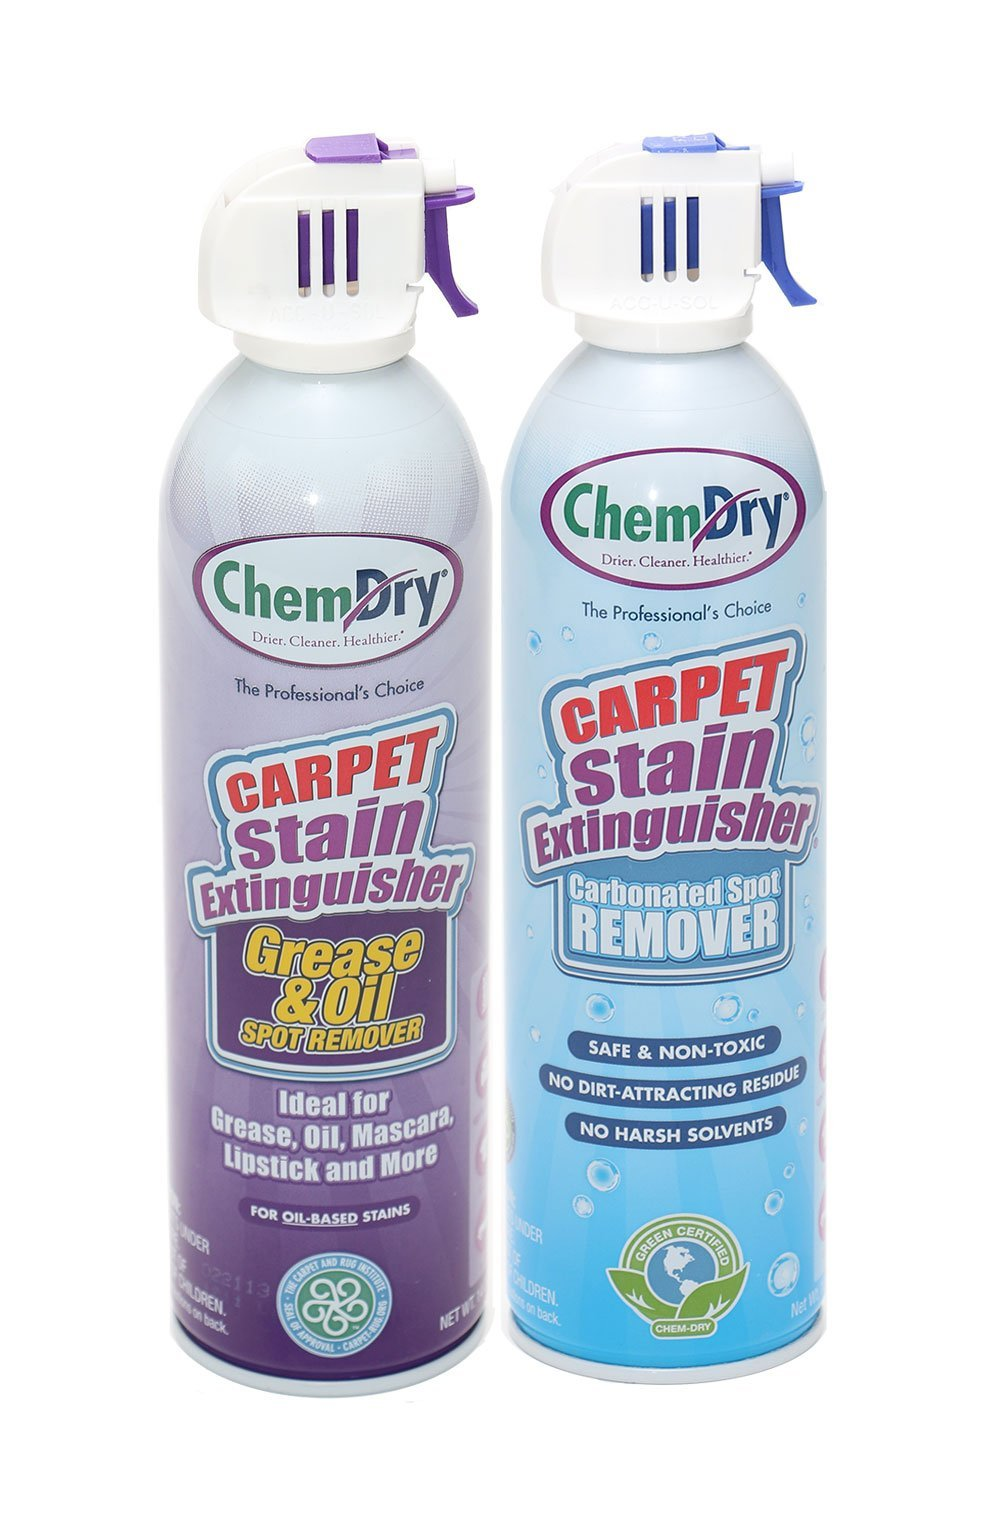 Chem-Dry's Carpet Stain Extinguisher Spot Remover + Grease & Oil Stain Extinguisher 2-Pack